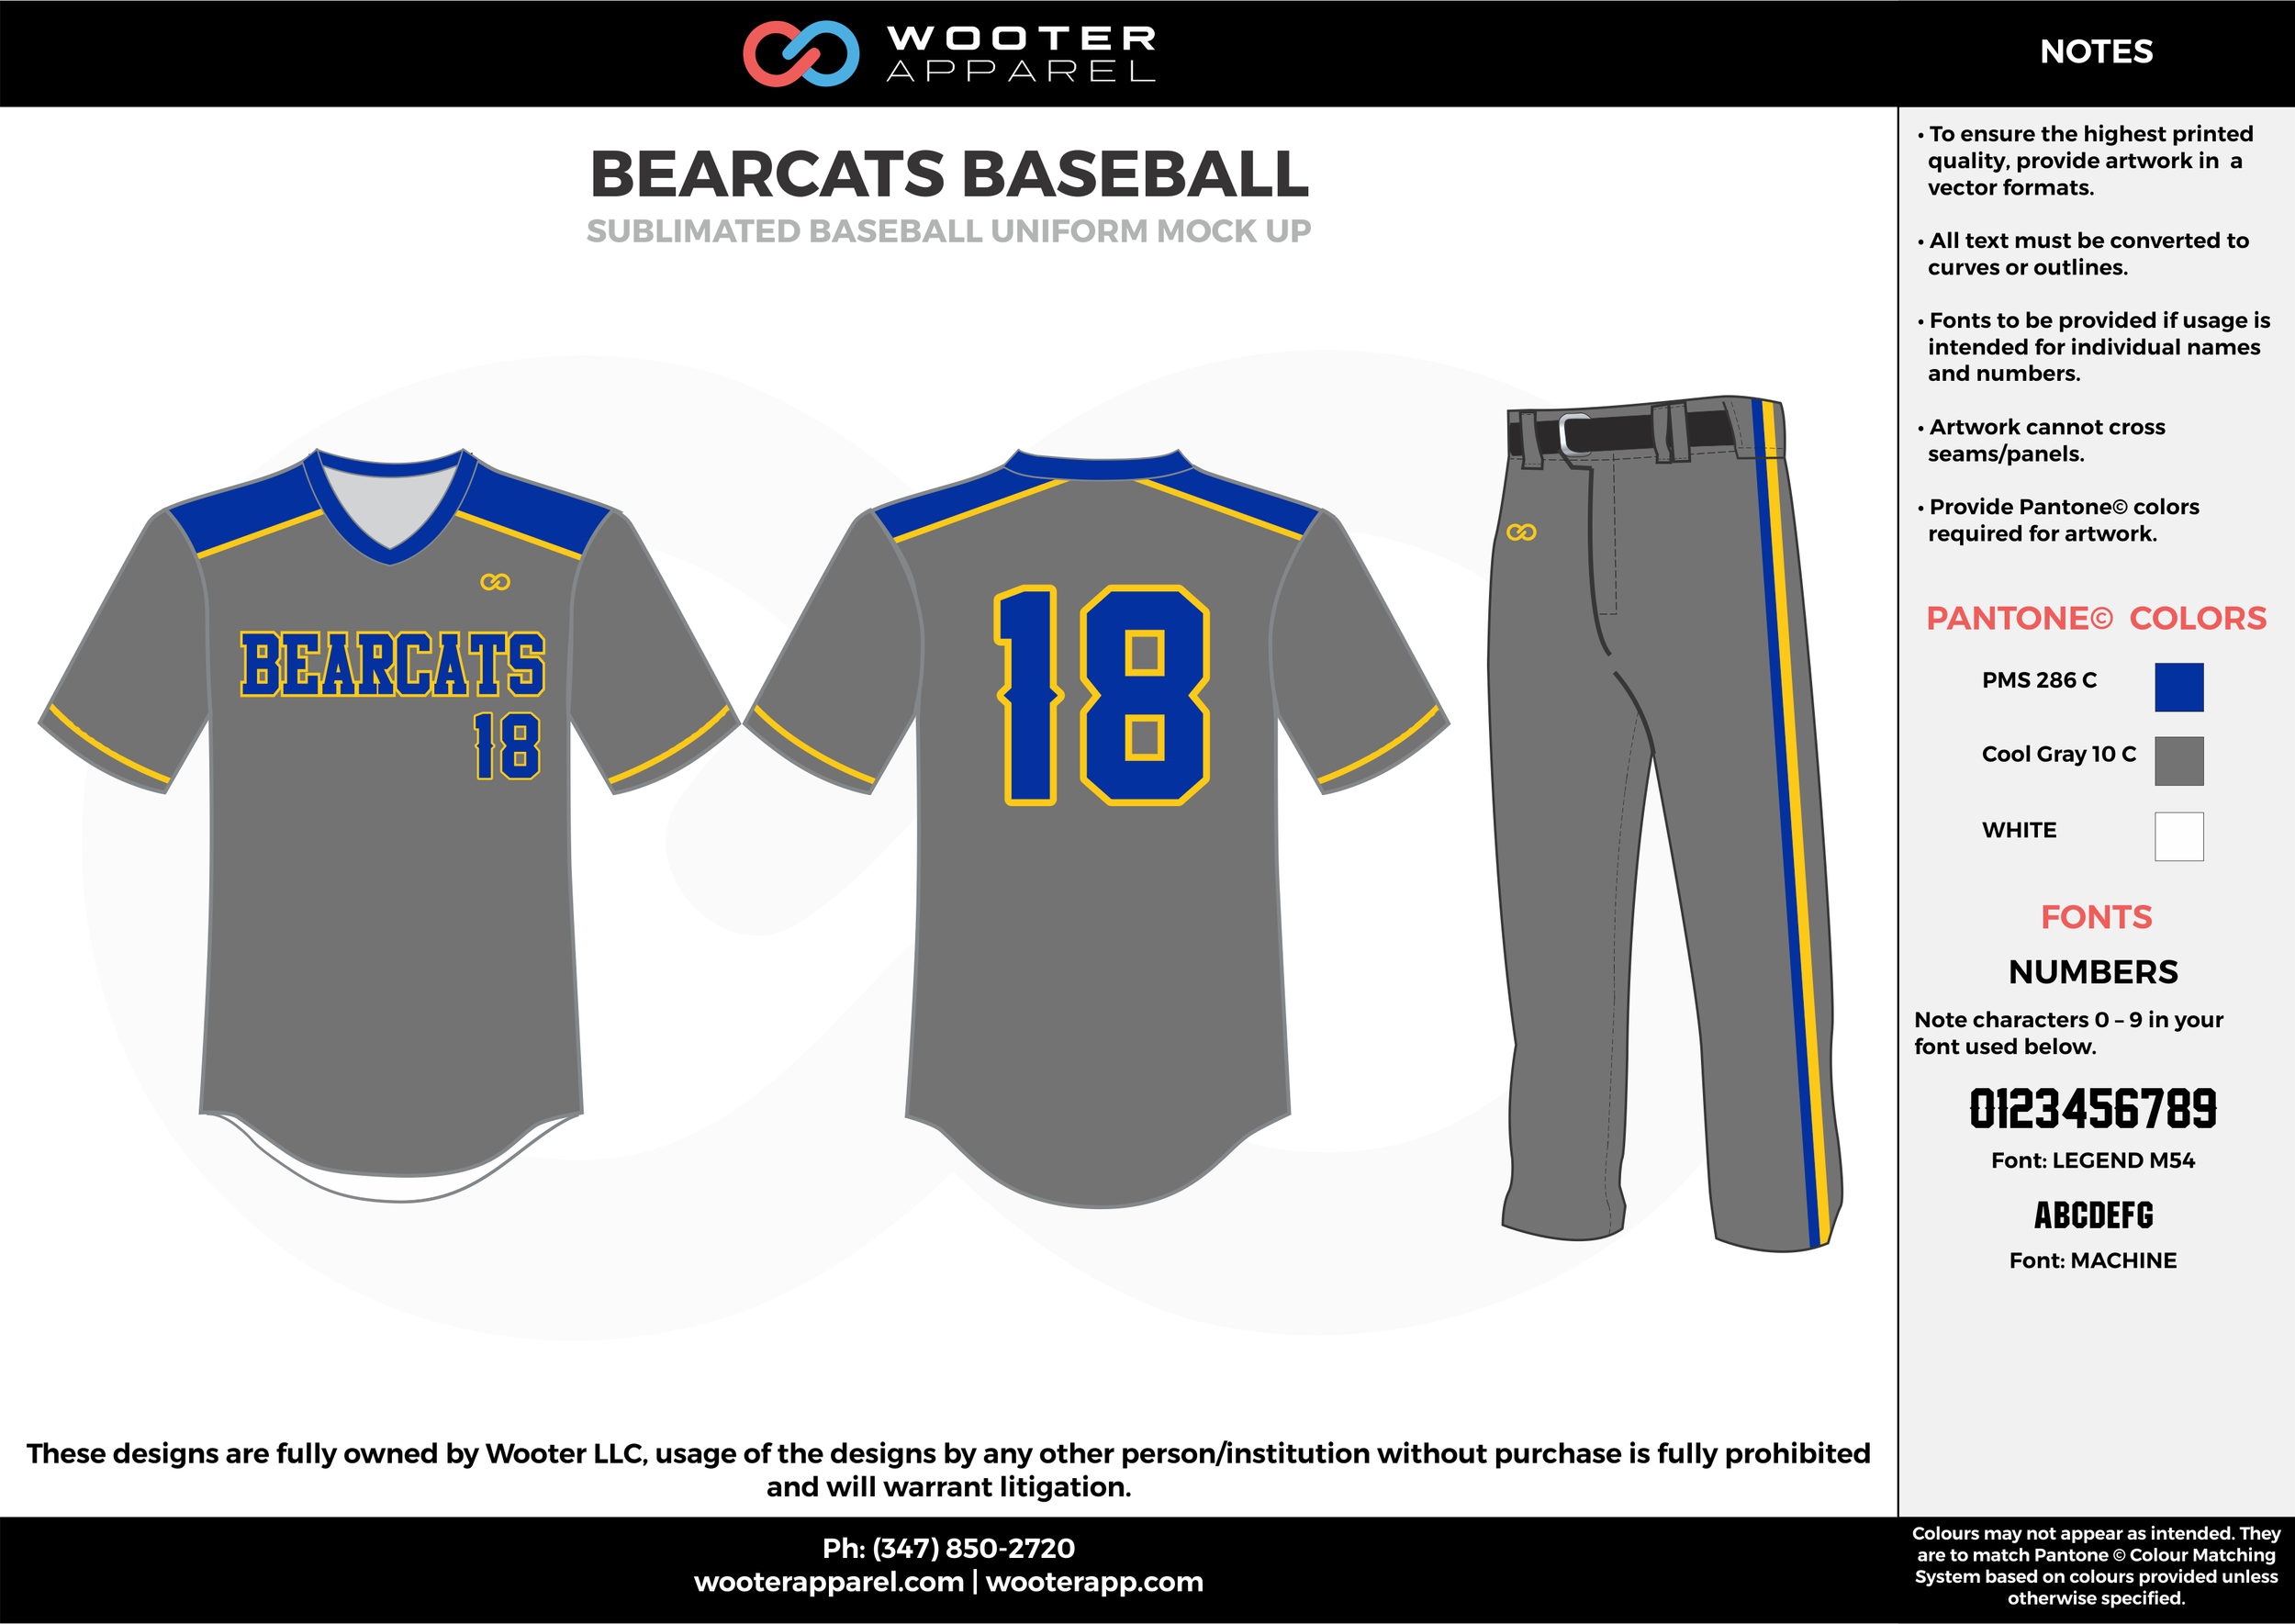 BEARCATS BASEBALL cool gray blue white baseball uniforms jerseys pants